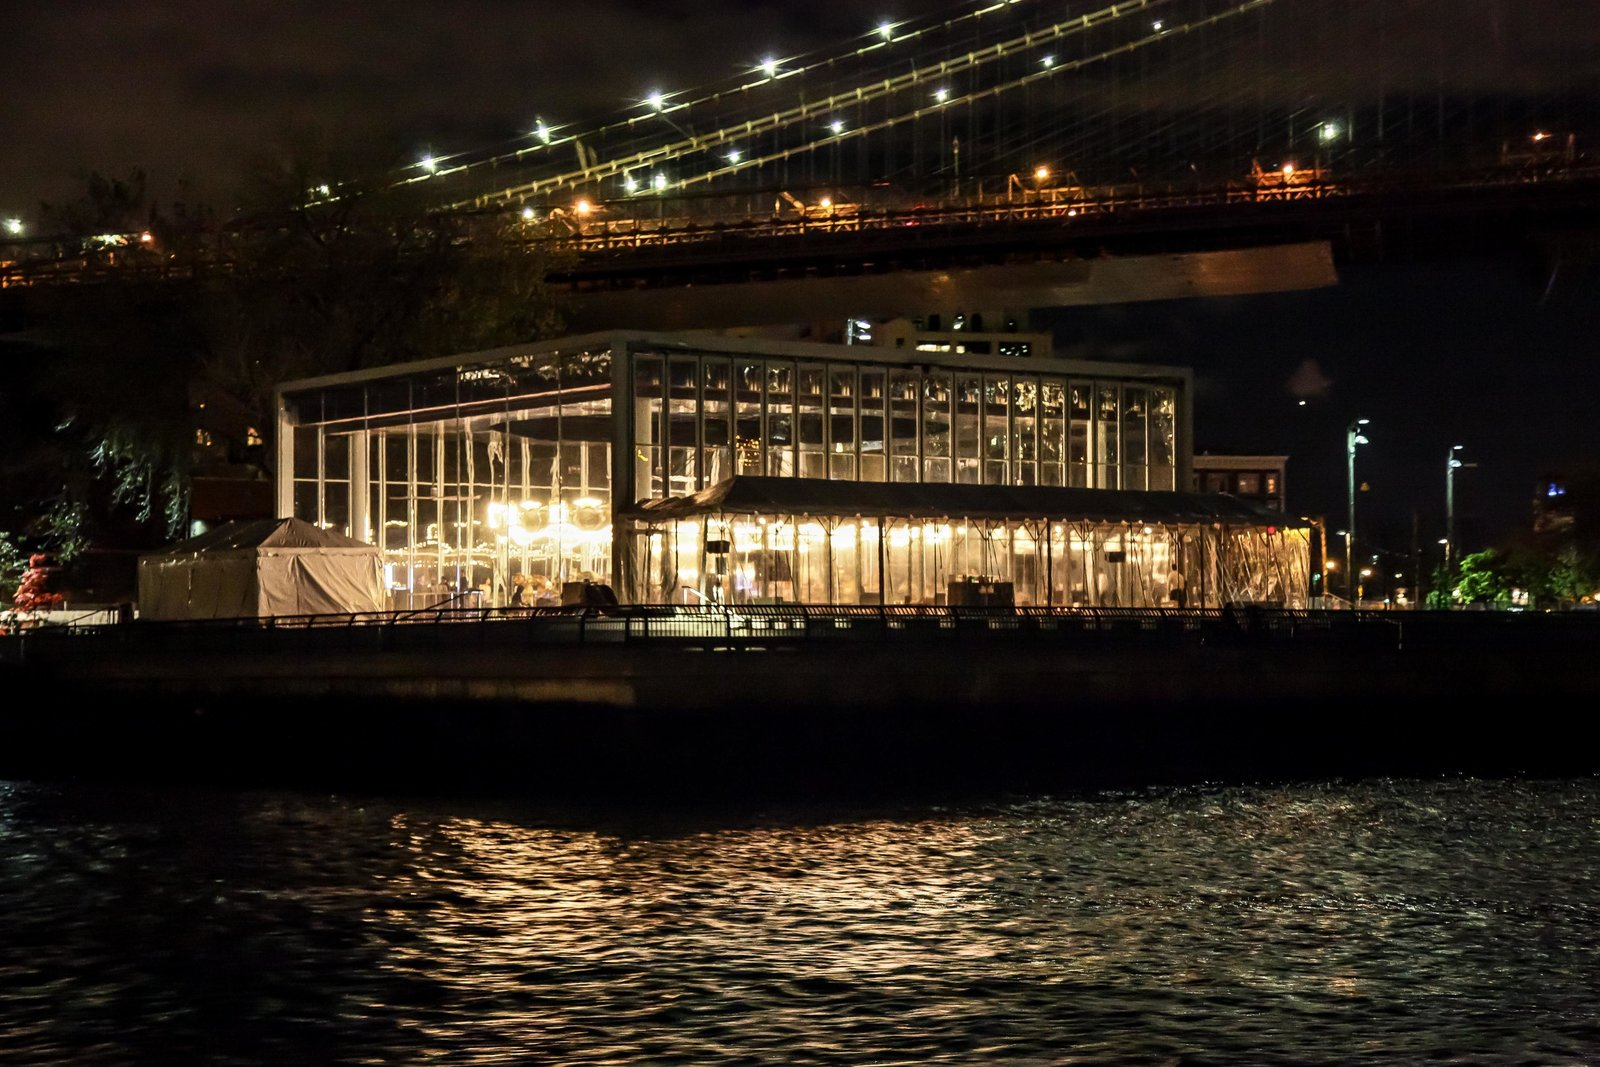 The view from the water taxi as it approached the venue excited attendees. Photo by Matteo Prandoni/BFAnyc.com.  Photo 5 of 15 in Dwell Media Announces Winner of Dwell Vision Award: SLO Architecture